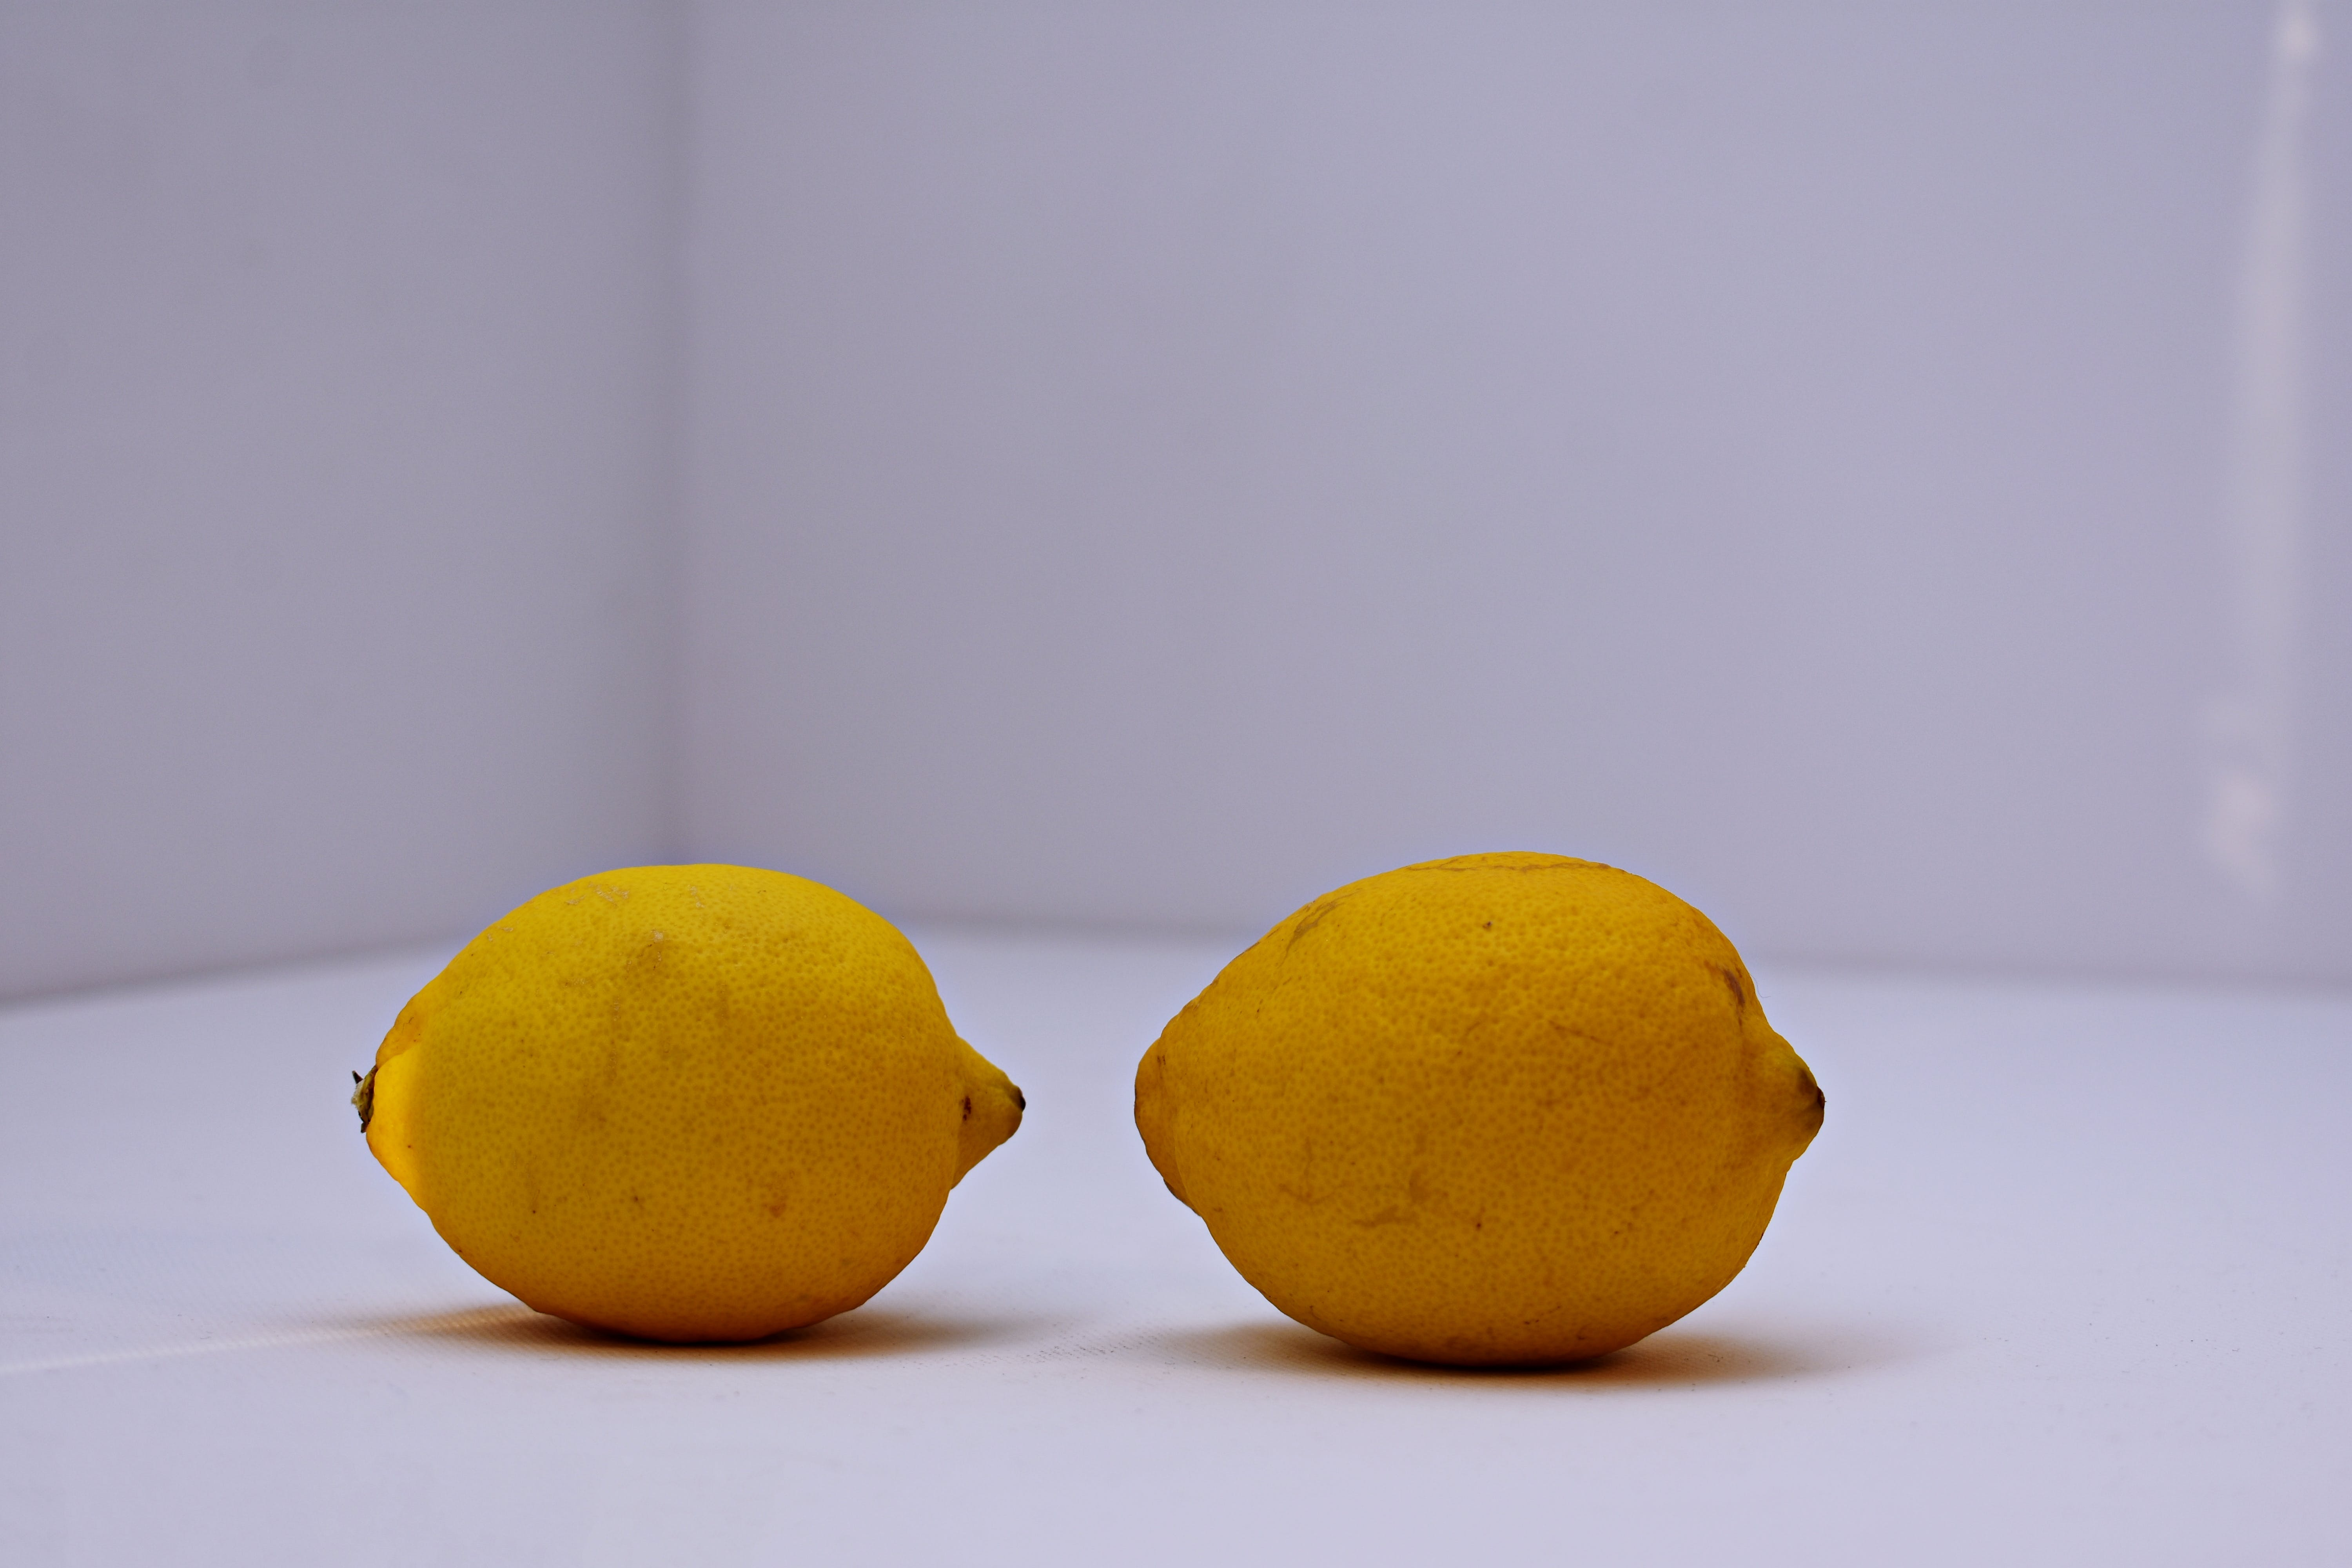 Two Yellow Lemons on White Surface